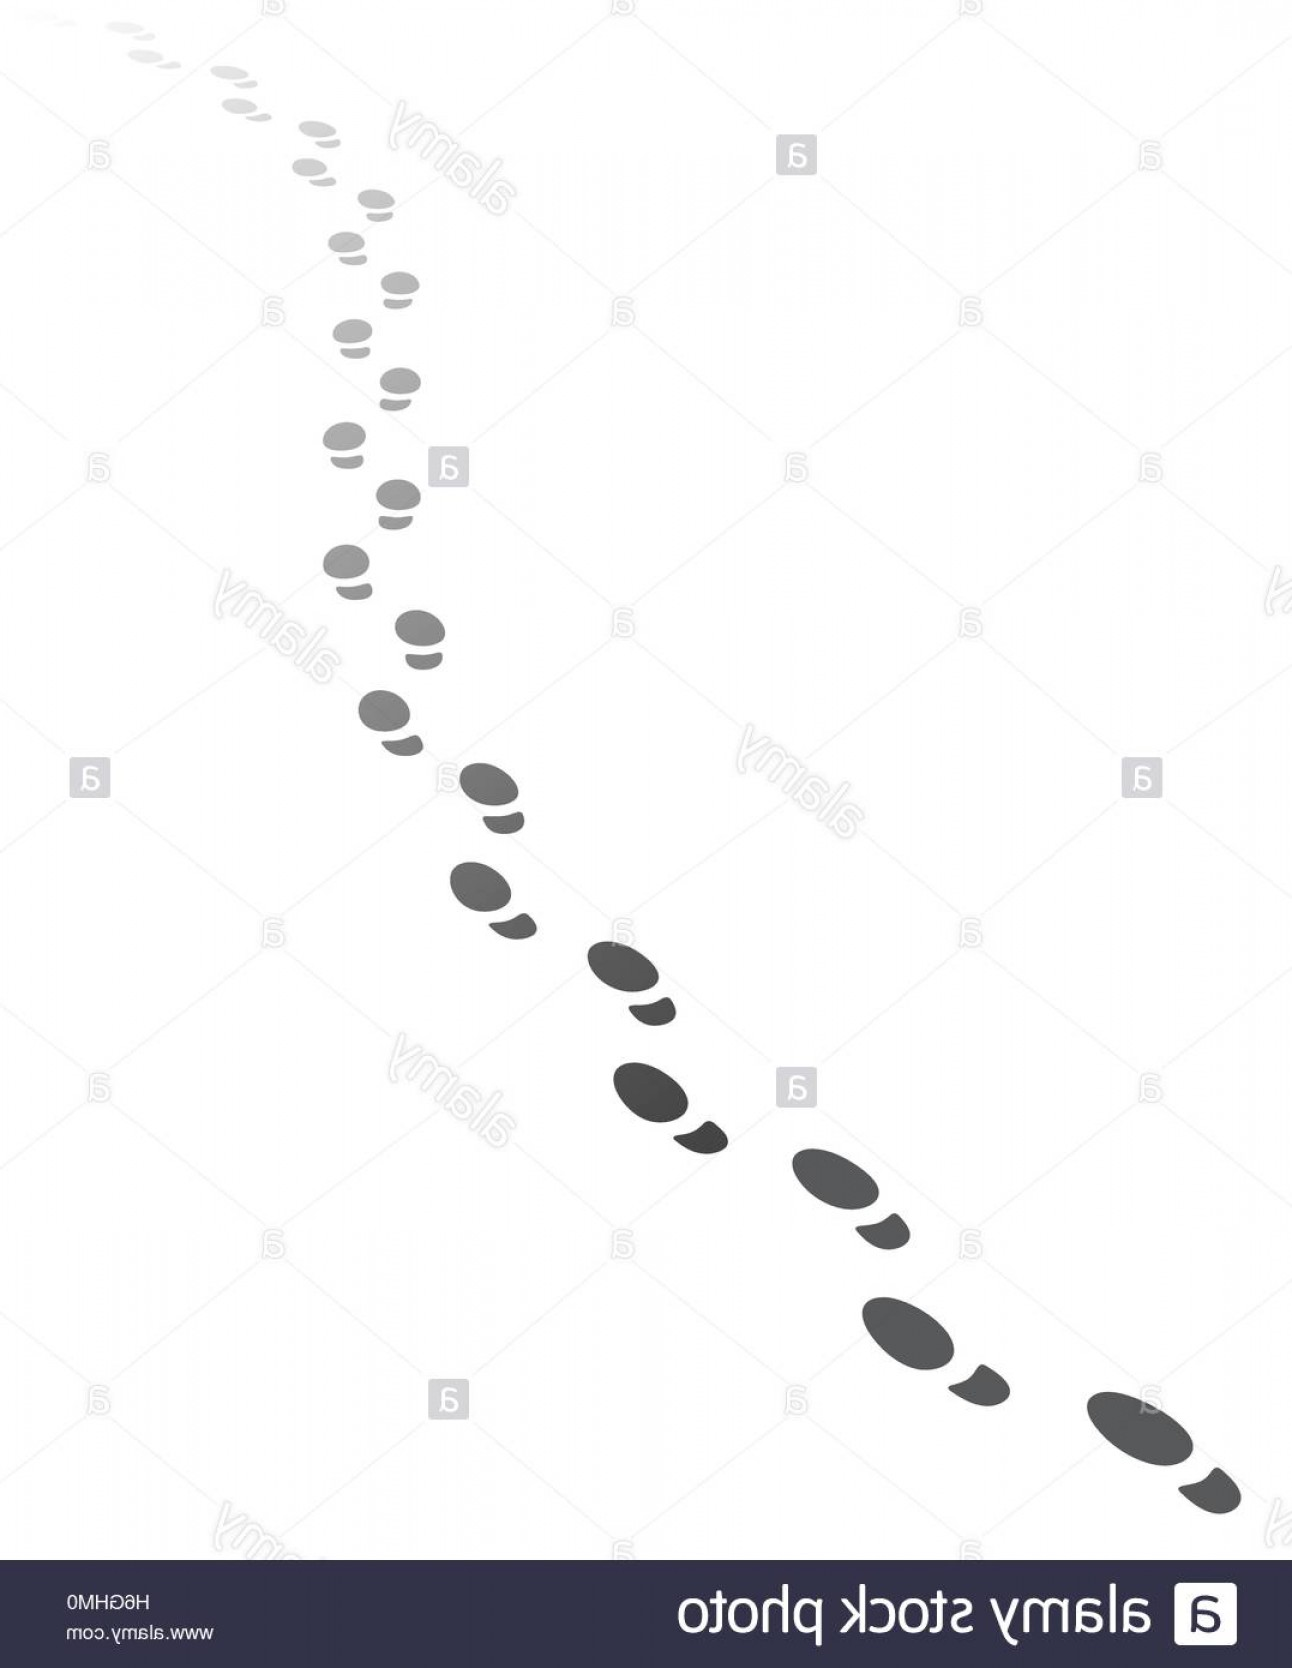 Walking Away Vector: Stock Photo Foot Steps Walking Awayvector Illustration Of Receding Human Footprints